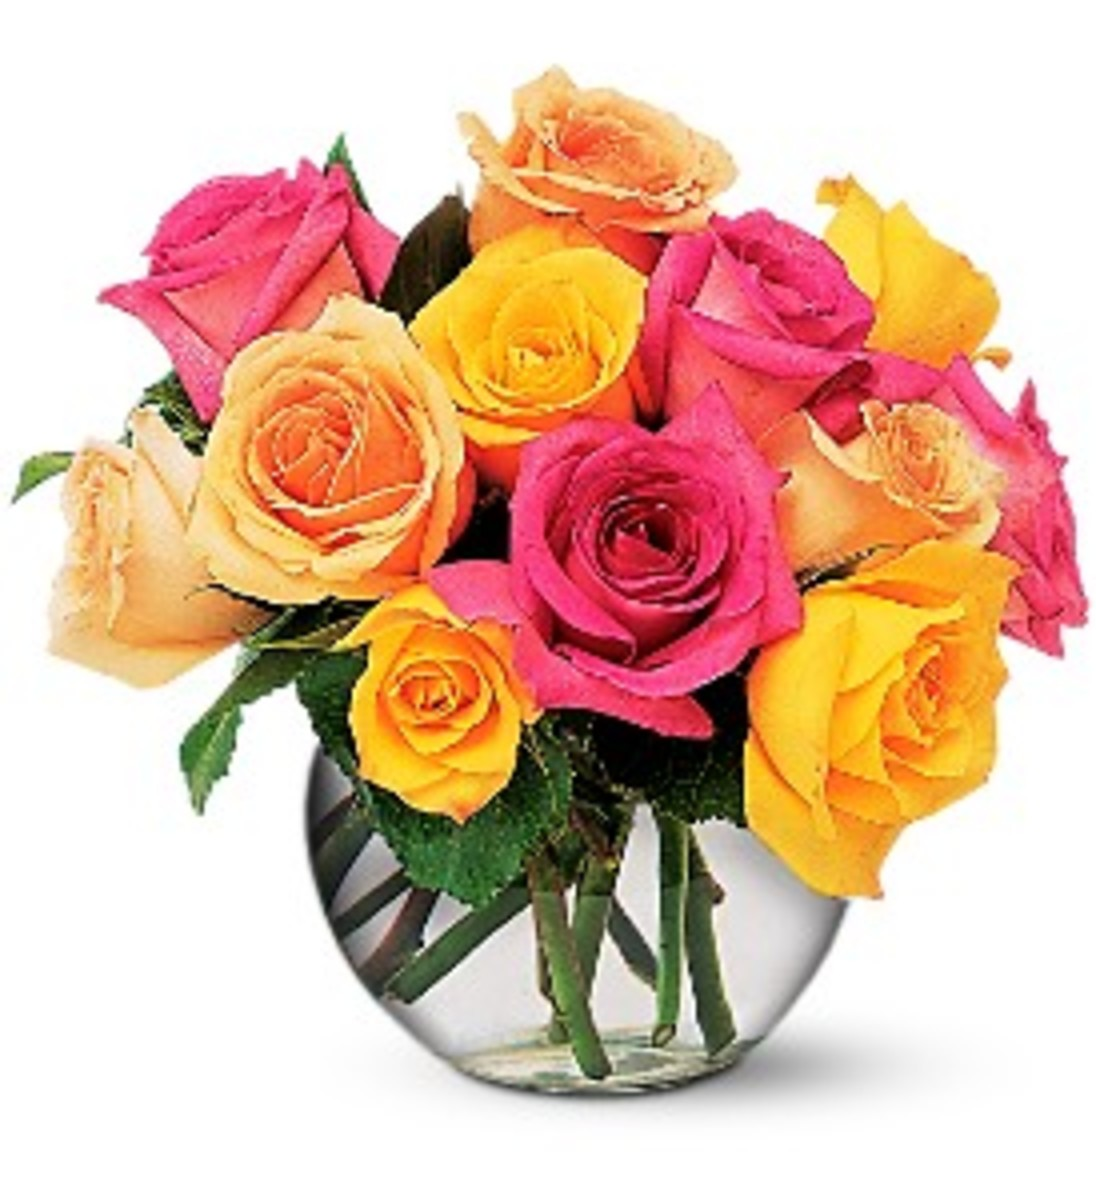 Meaning of Roses Colors and Number as Romantic Gift for Her